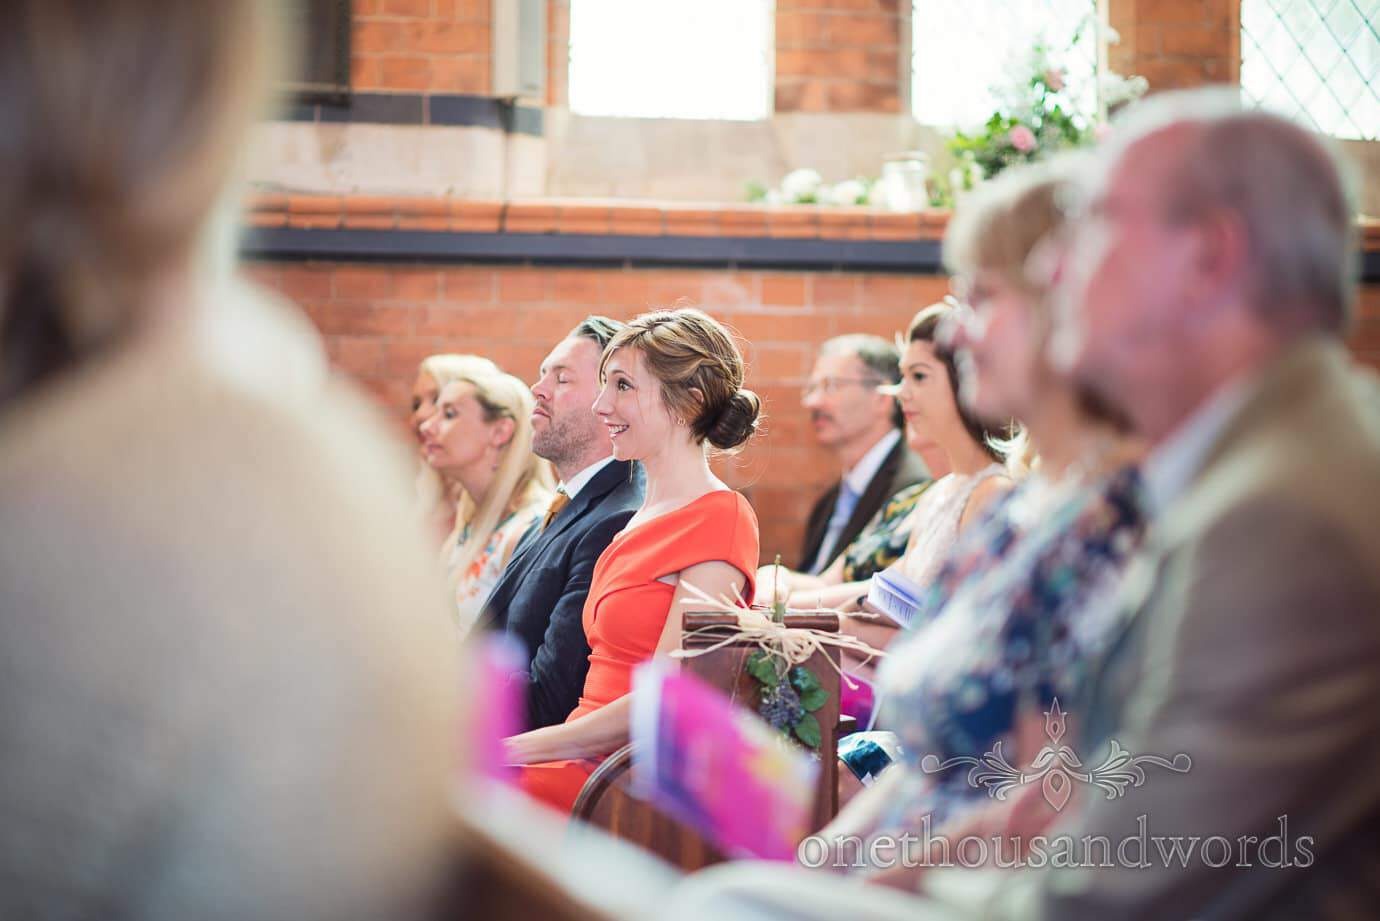 Wedding guest cries tears of joy during wedding ceremony in country church